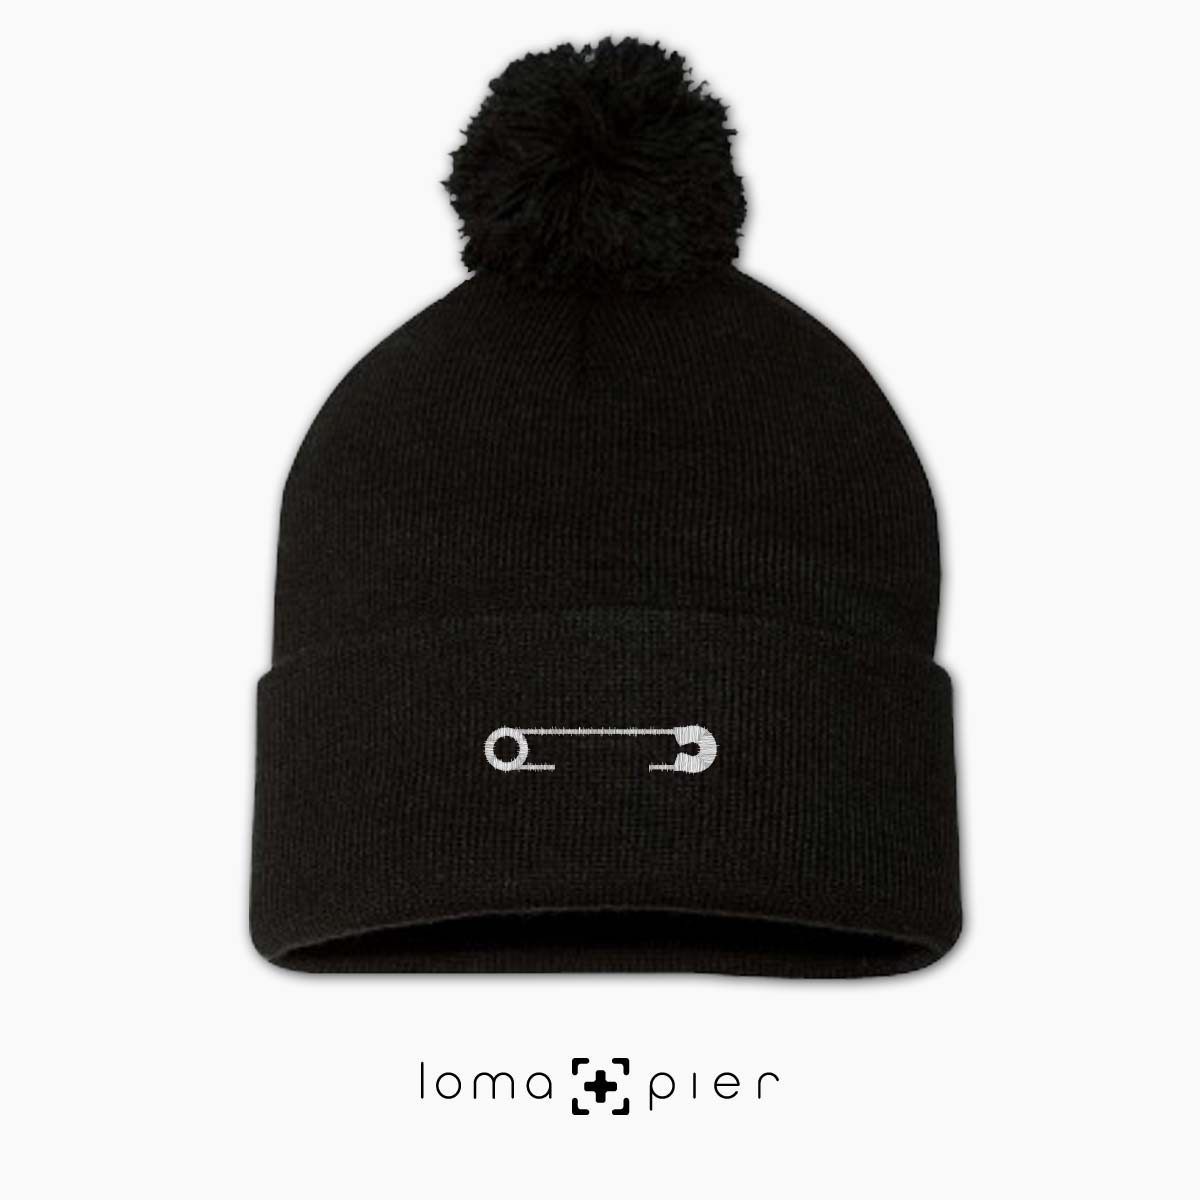 SAFETY PIN icon embroidered on a black pom pom beanie with white thread by loma+pier hat store